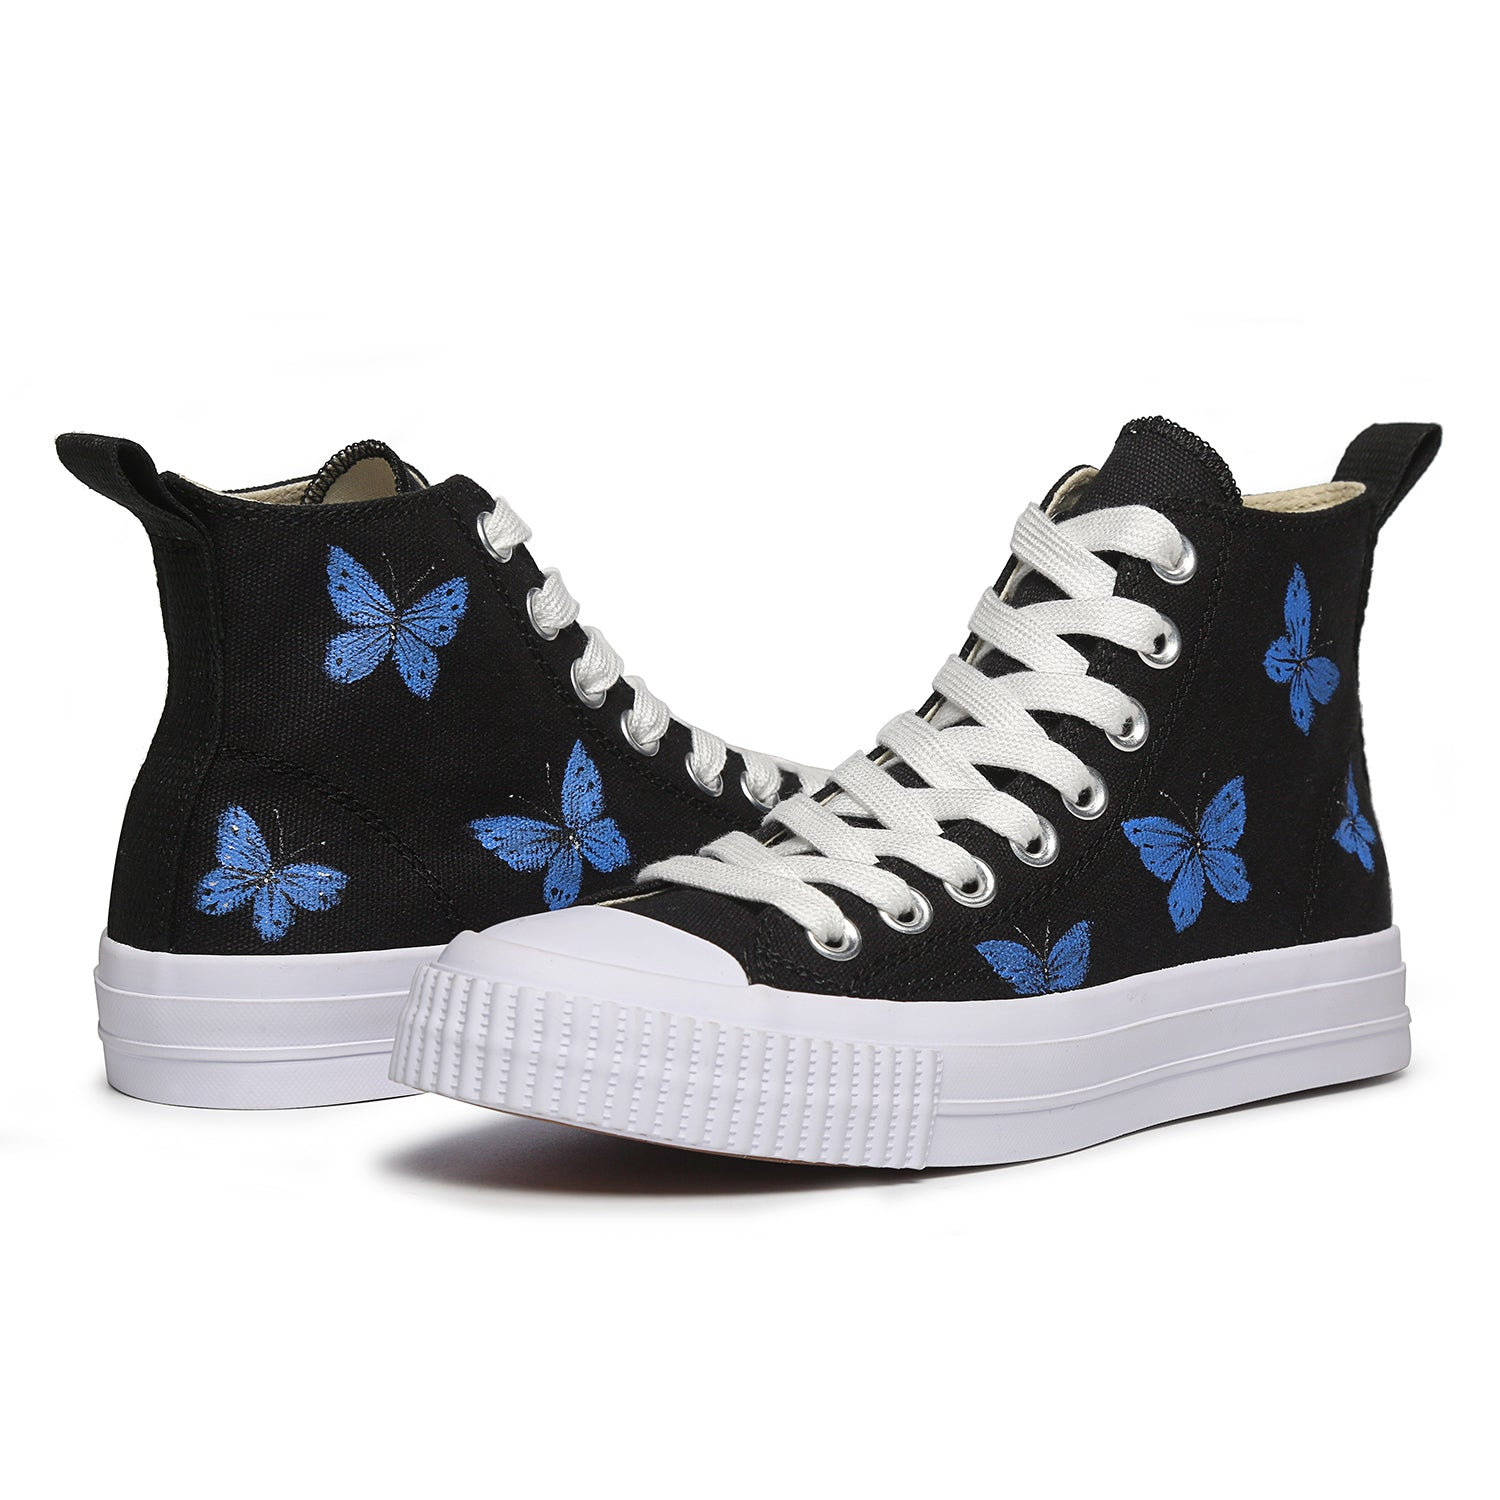 Women Painted Shoes High Top Sneakers Casual Lace Up Canvas Shoes Butterfly